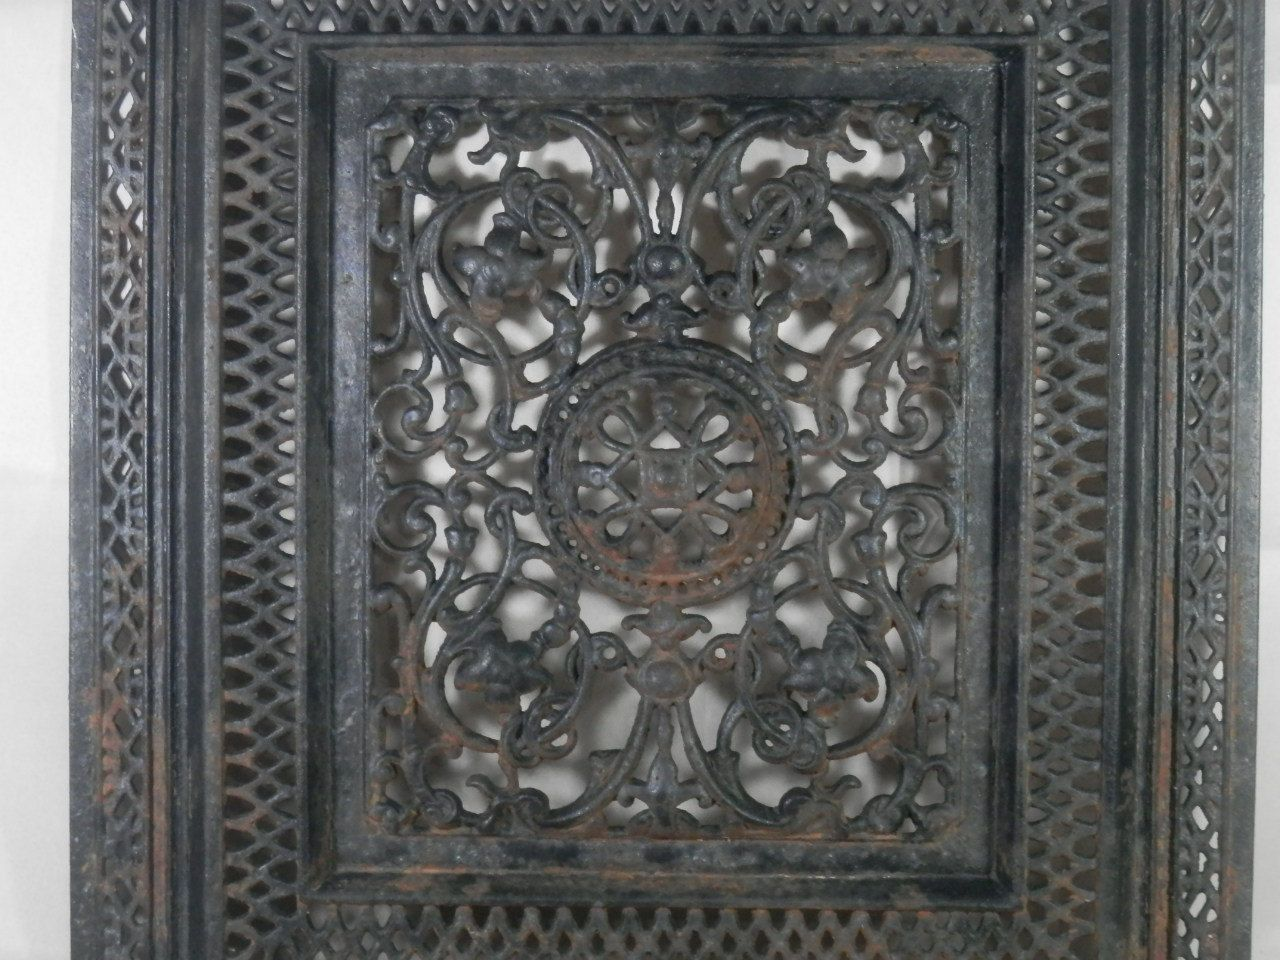 vintage cast iron fireplace summer cover ornate screen decorative